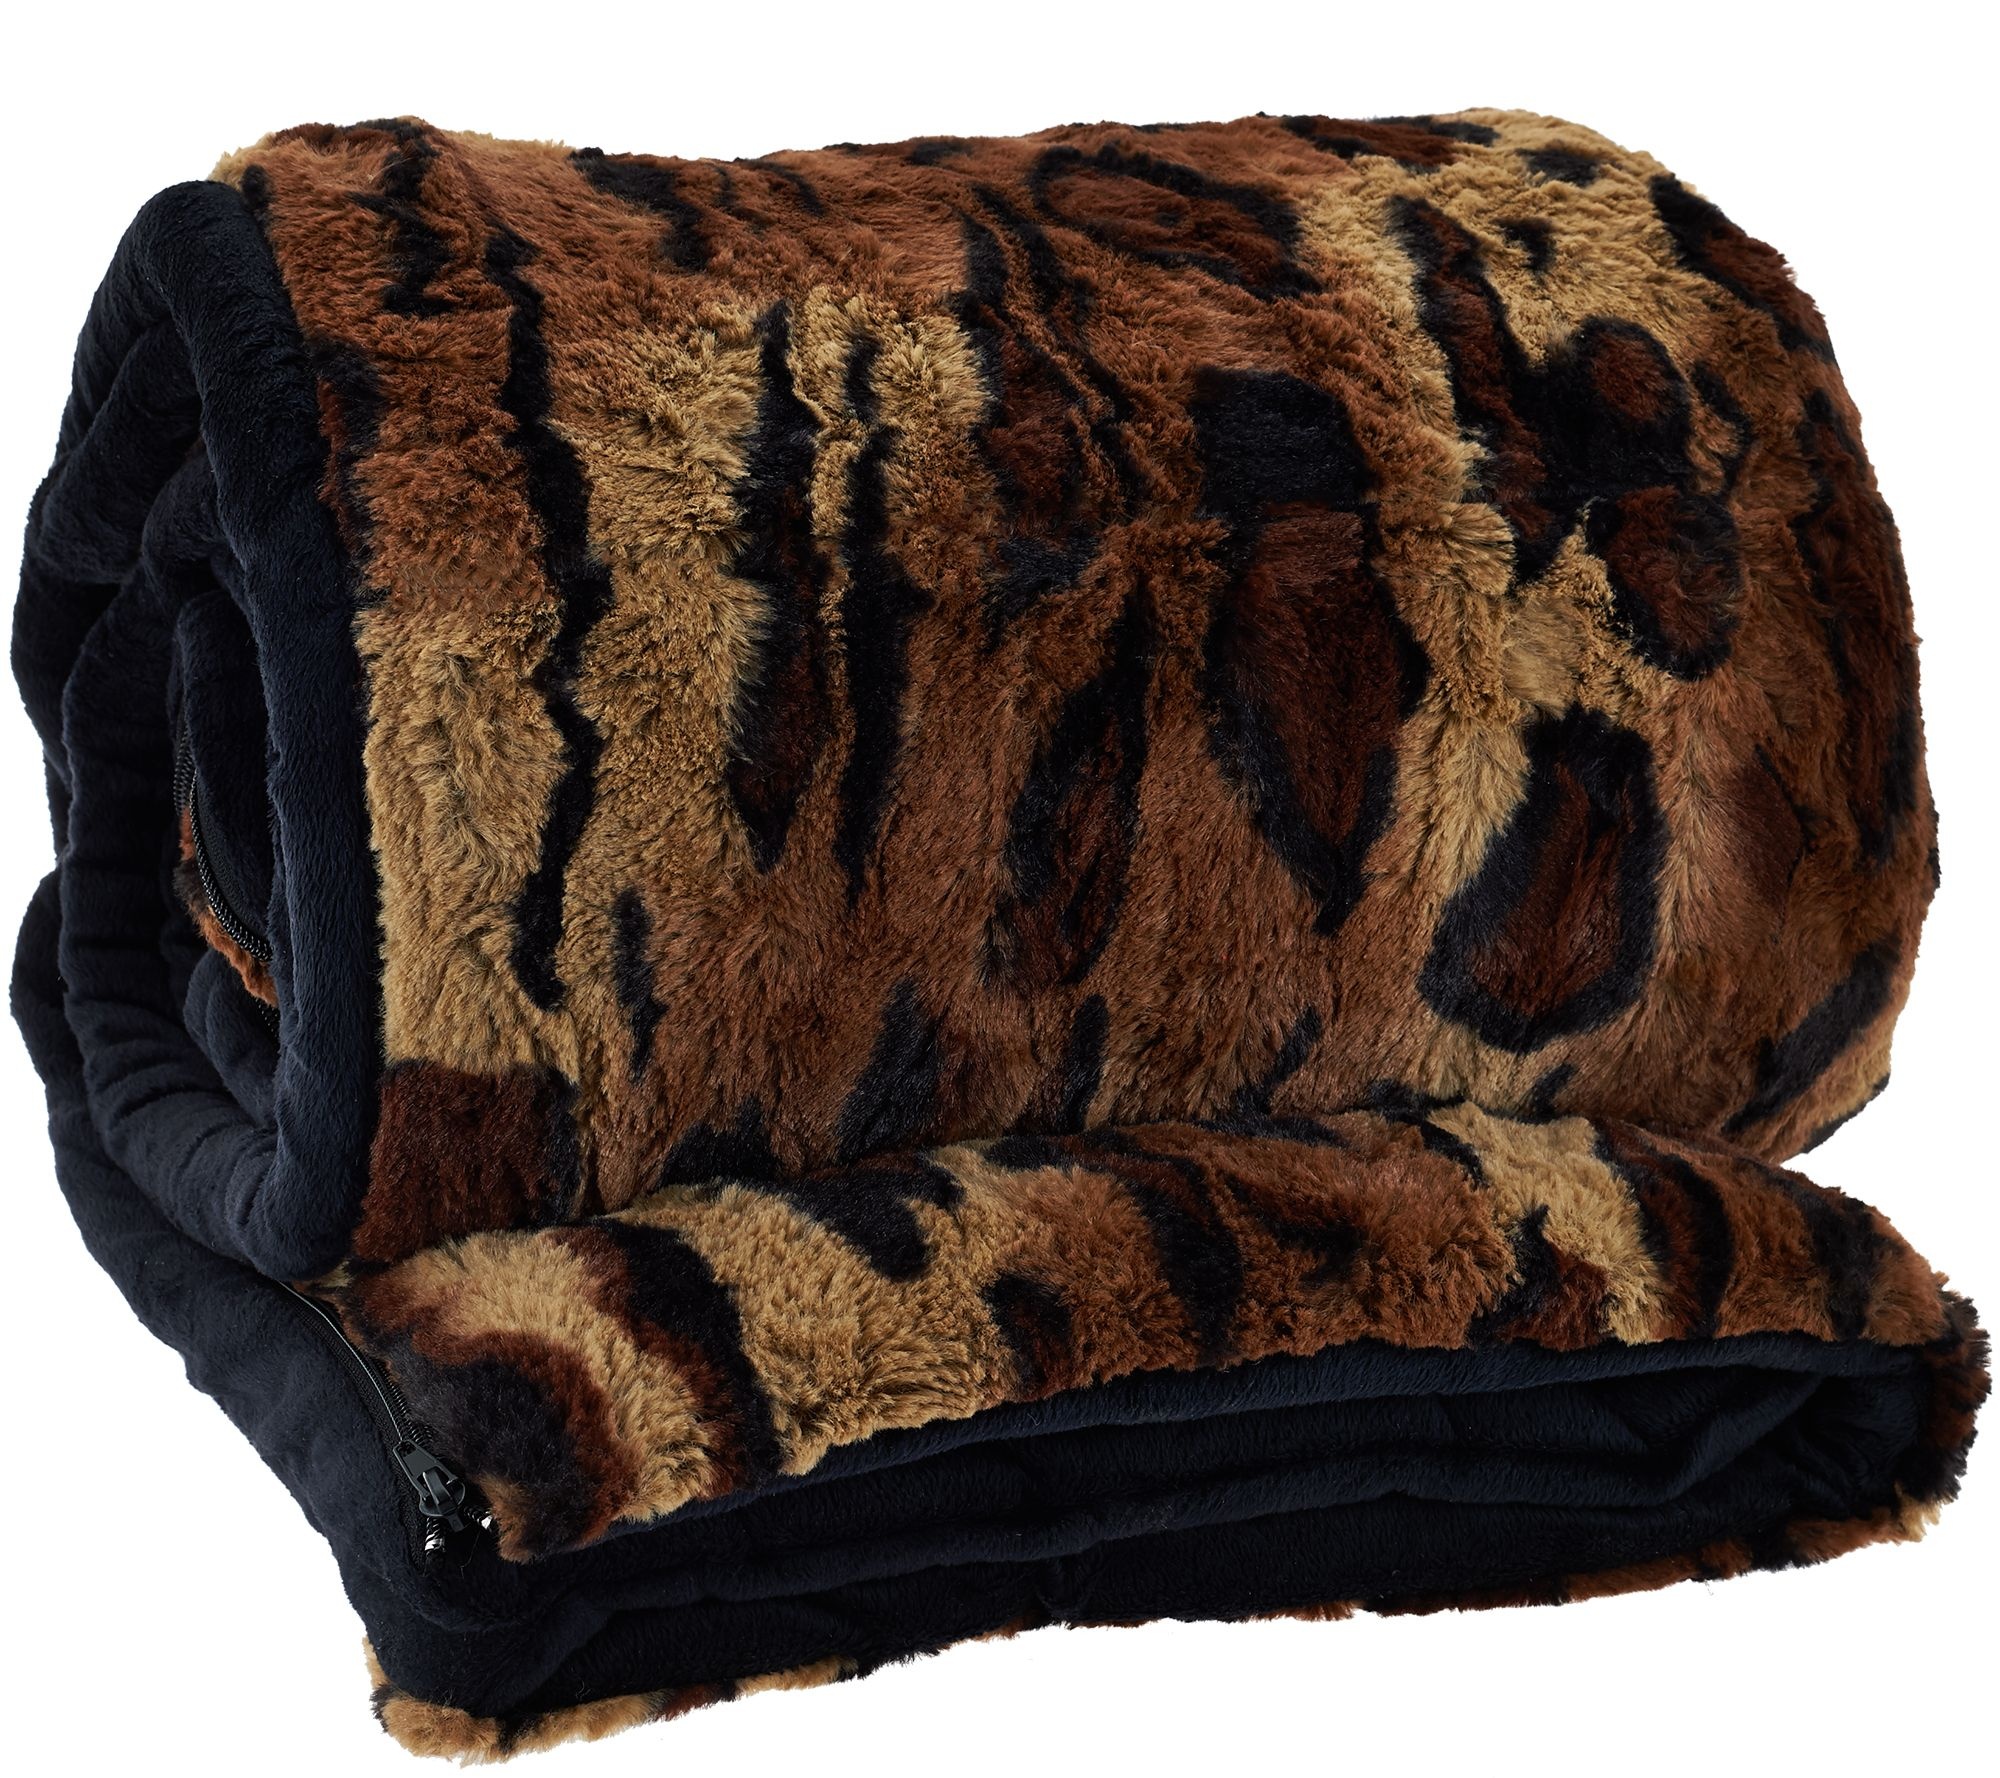 Dennis Basso 31 X70 Snuggly Luxe Faux Fur Velboa Sleeping Bag Page 1 Qvc